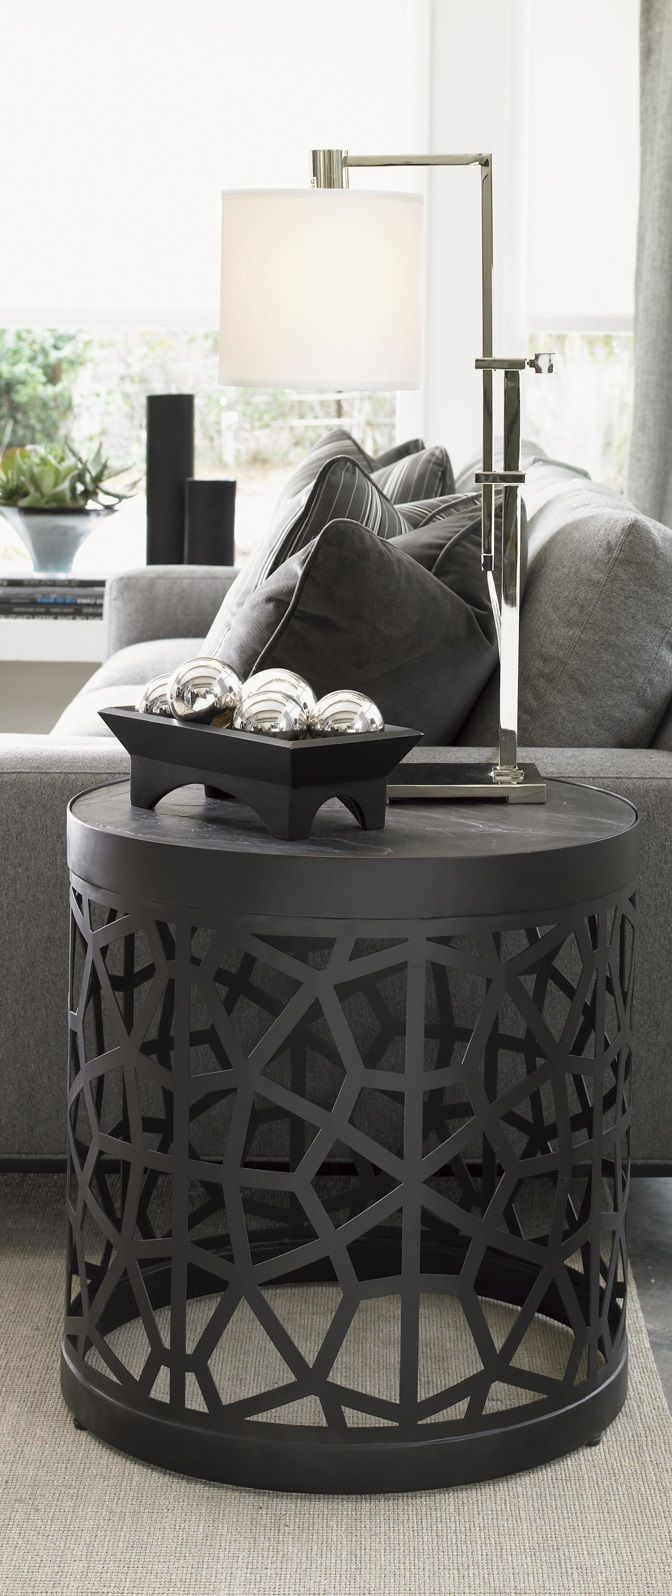 top 25 best end tables ideas on pinterest decorating end tables wood end tables and rustic side table